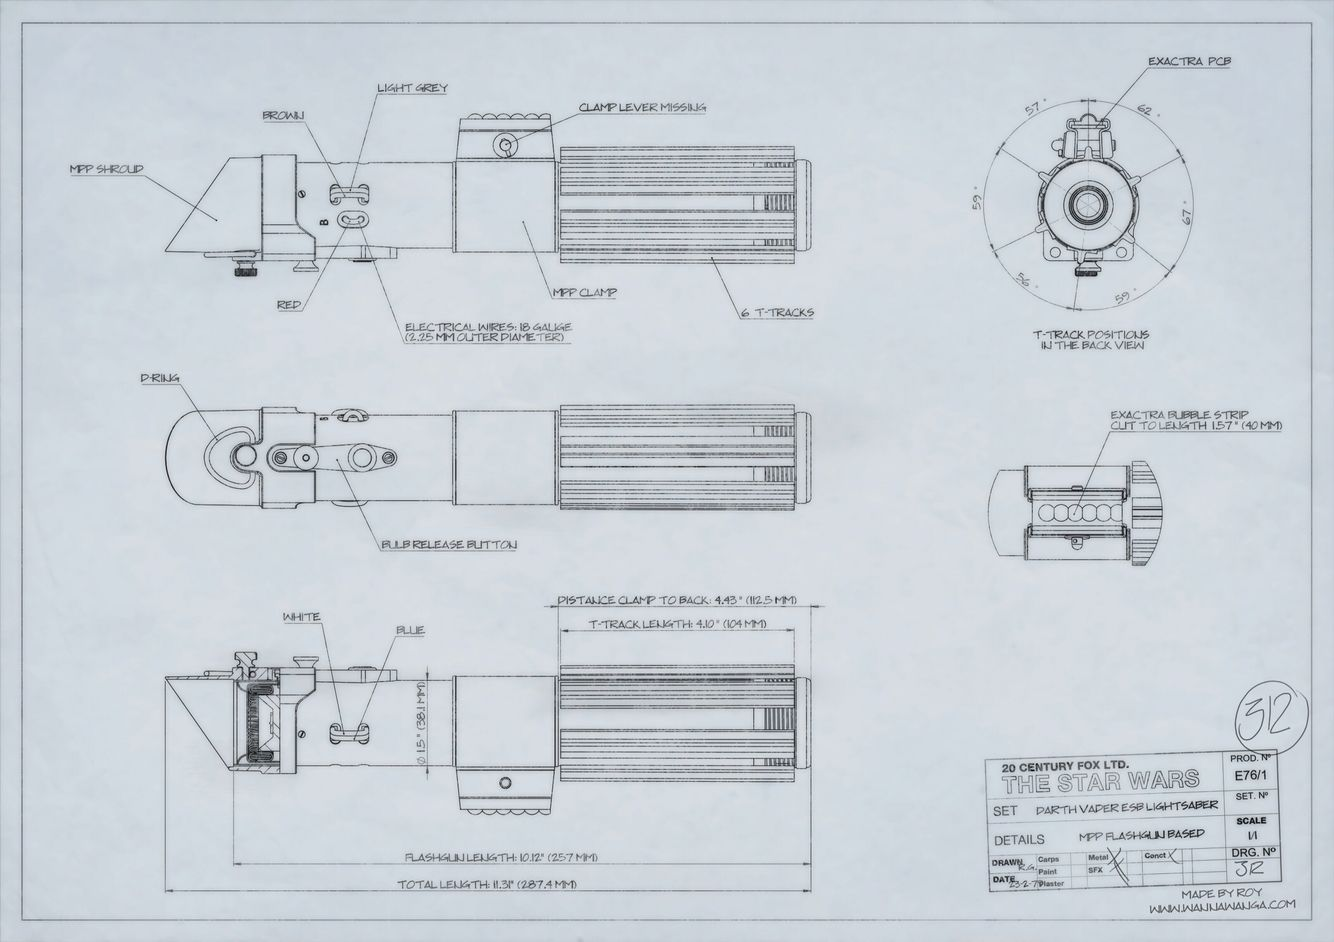 medium resolution of  darth vader esb lightsaber blueprint wannawanga com blueprints on light wiring diagram